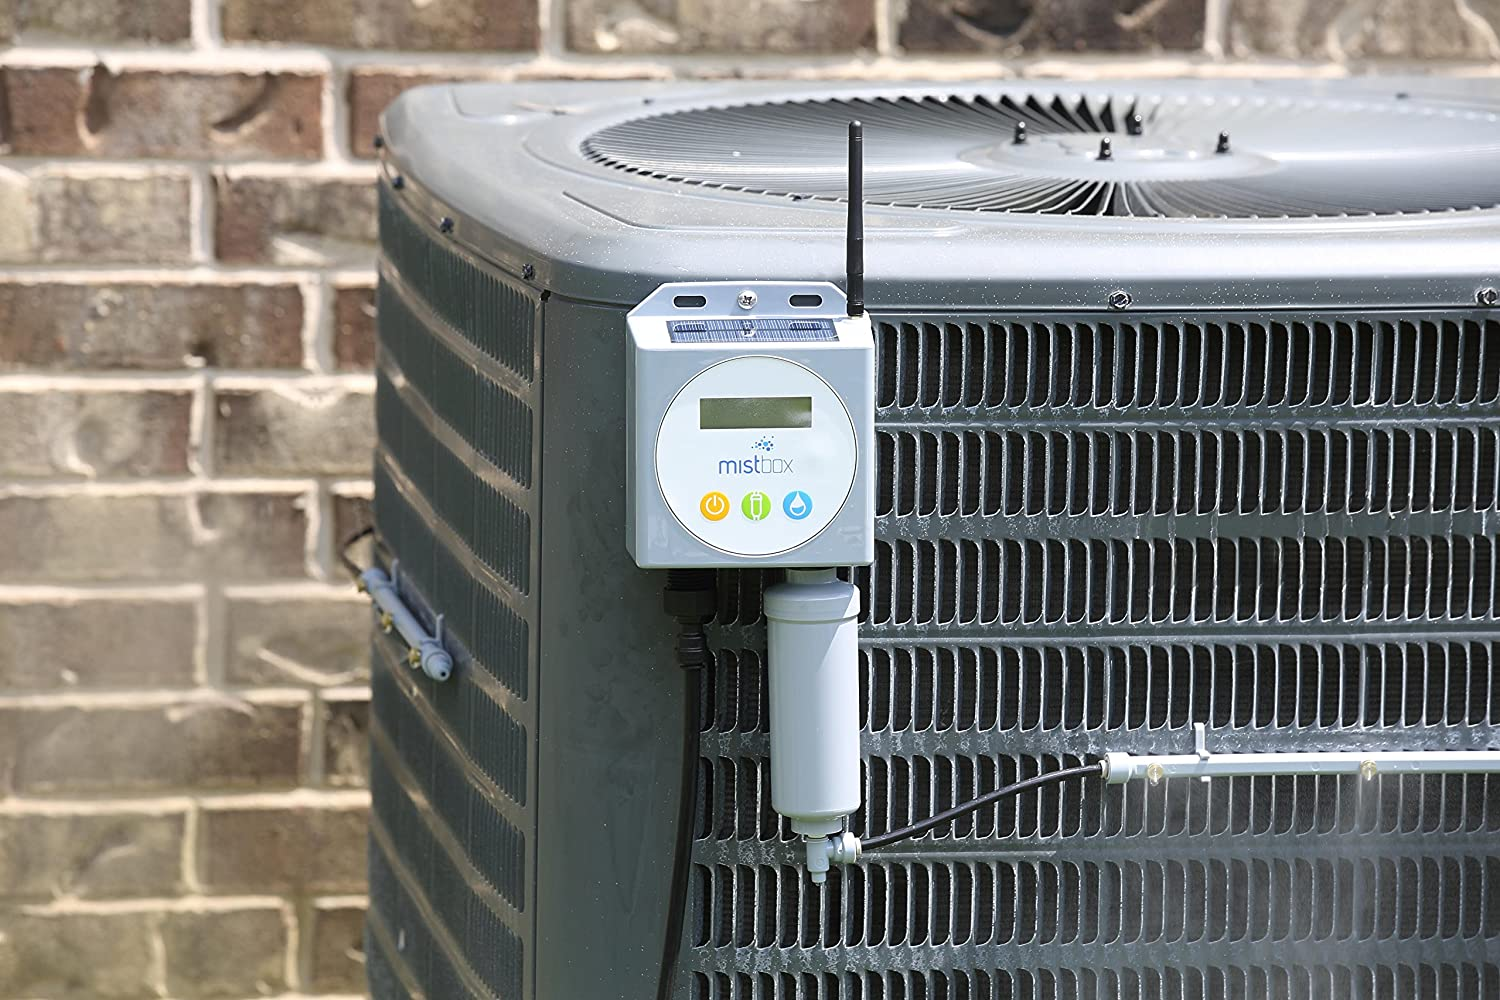 Ac Misting System : Hvac professionals good idea or not misting unit on ac